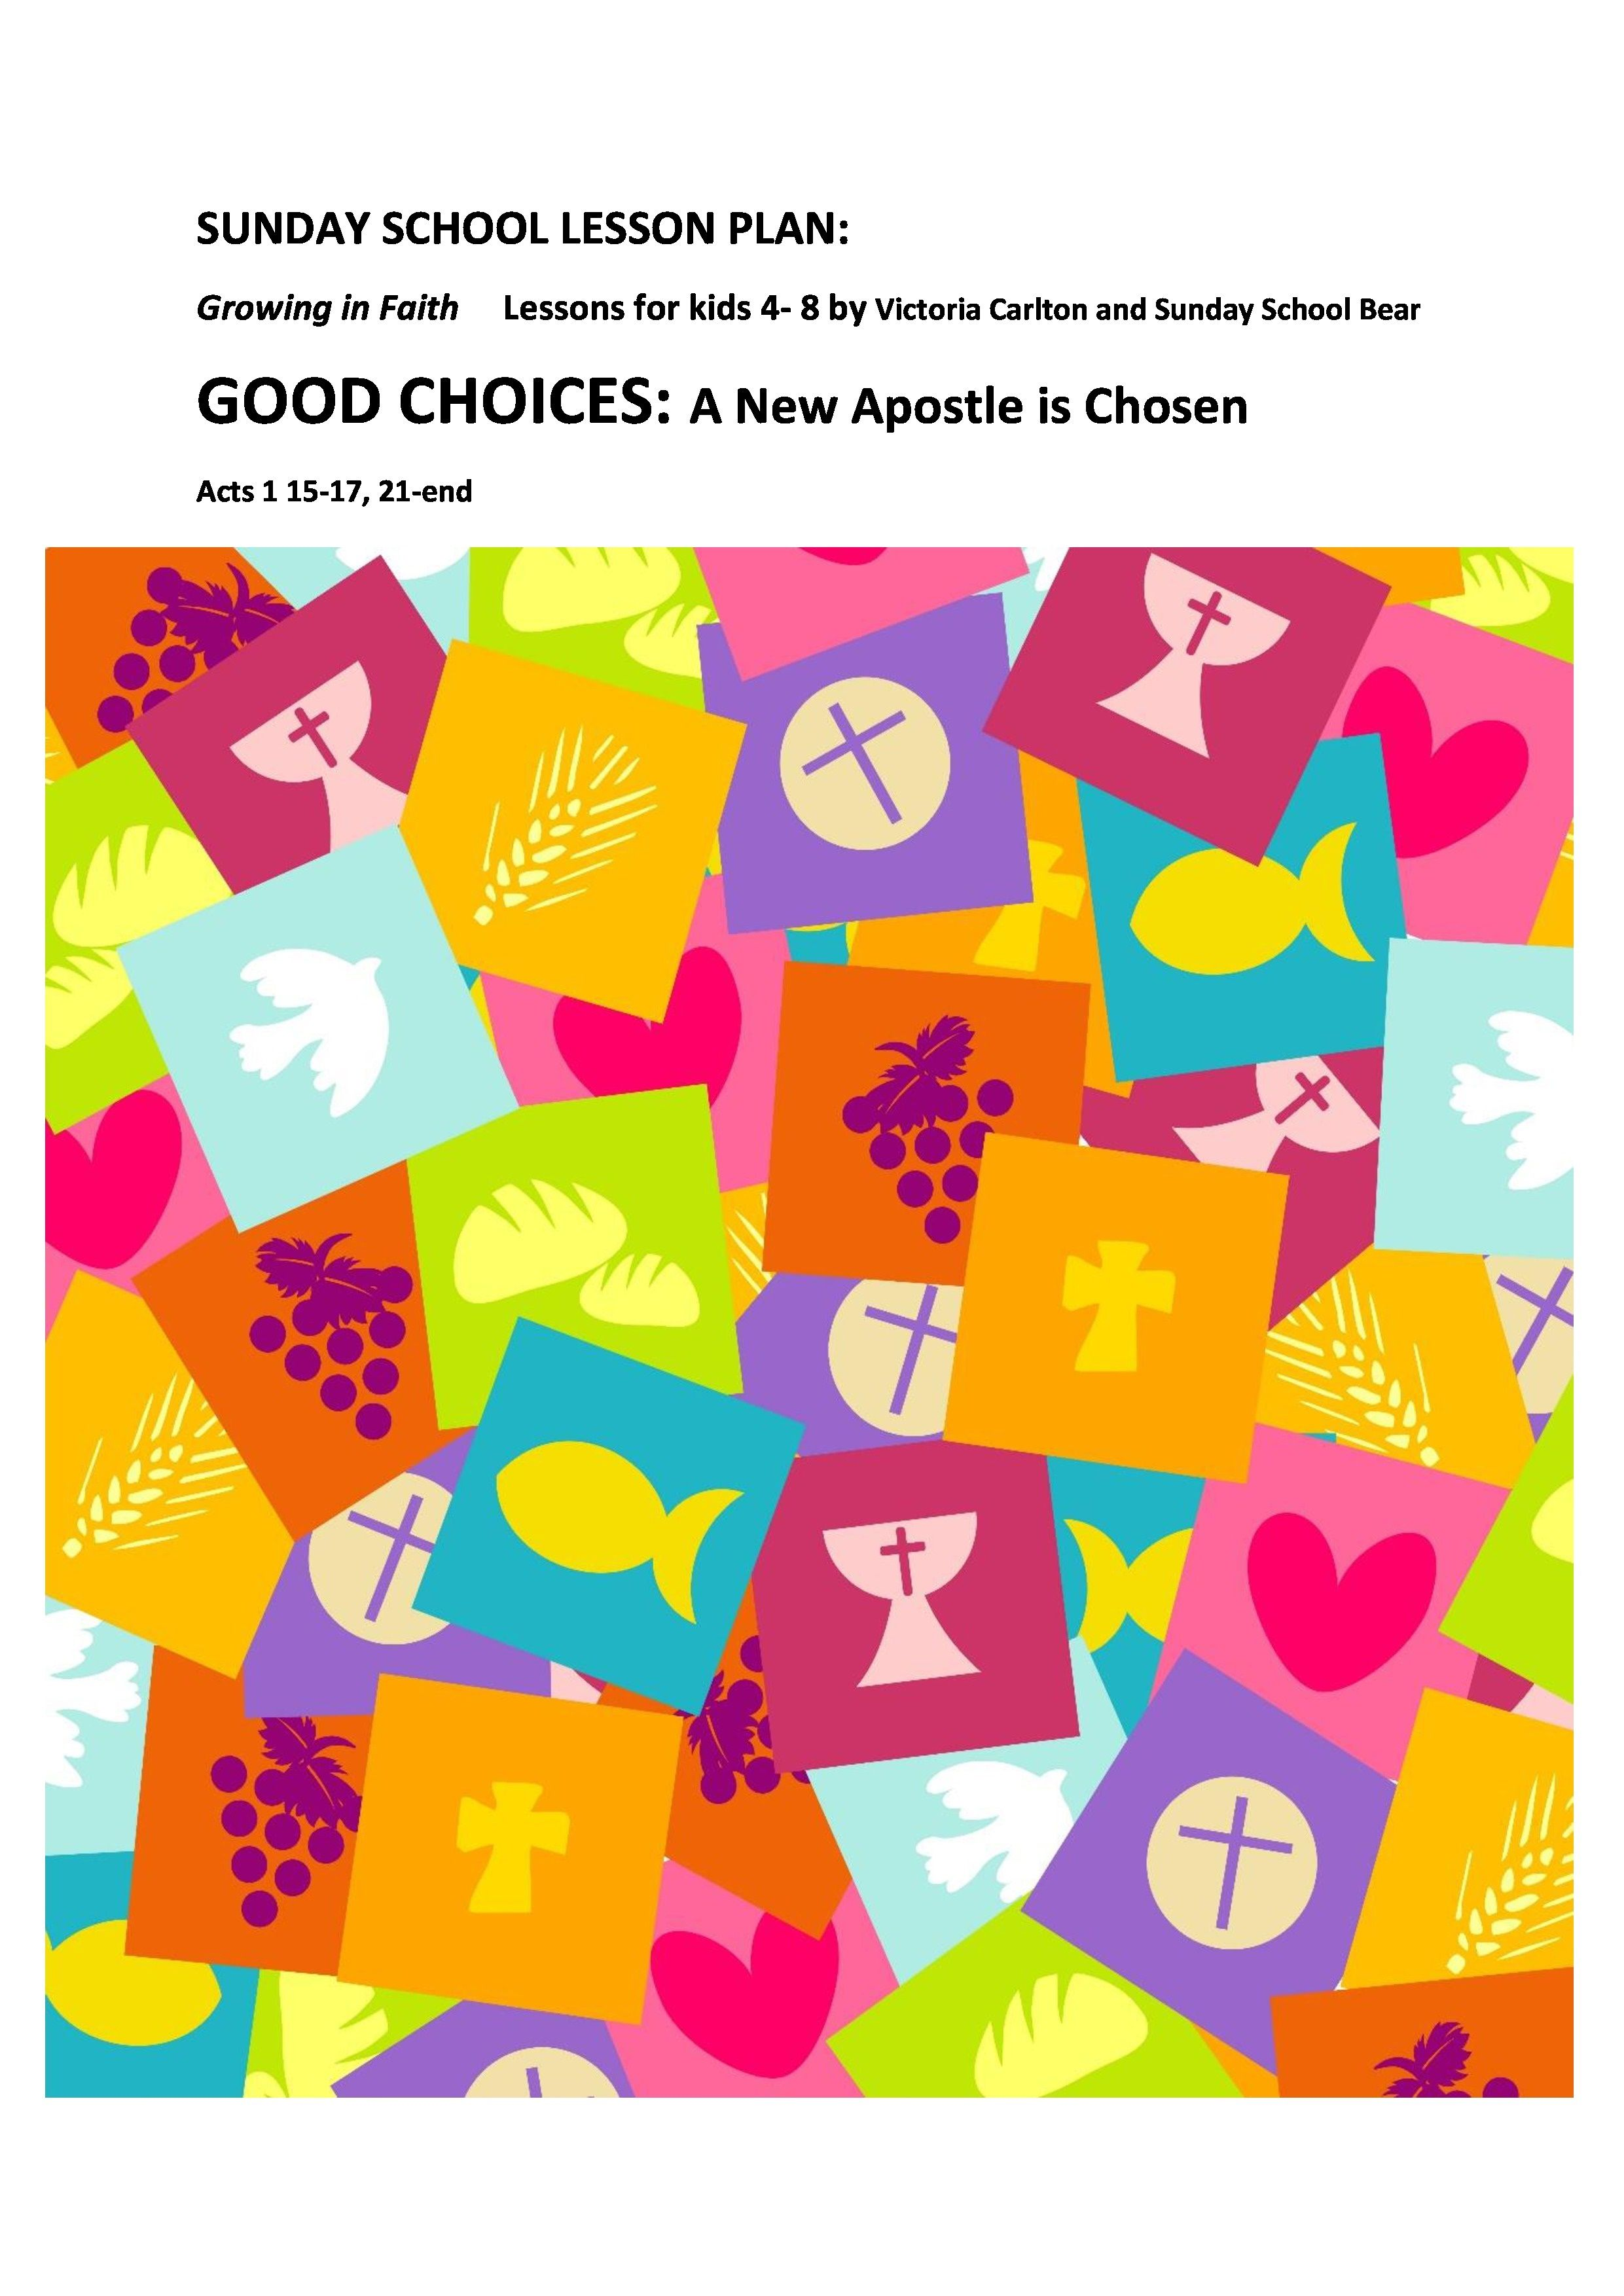 Sunday School Lesson Good Choices A New Apostle Is